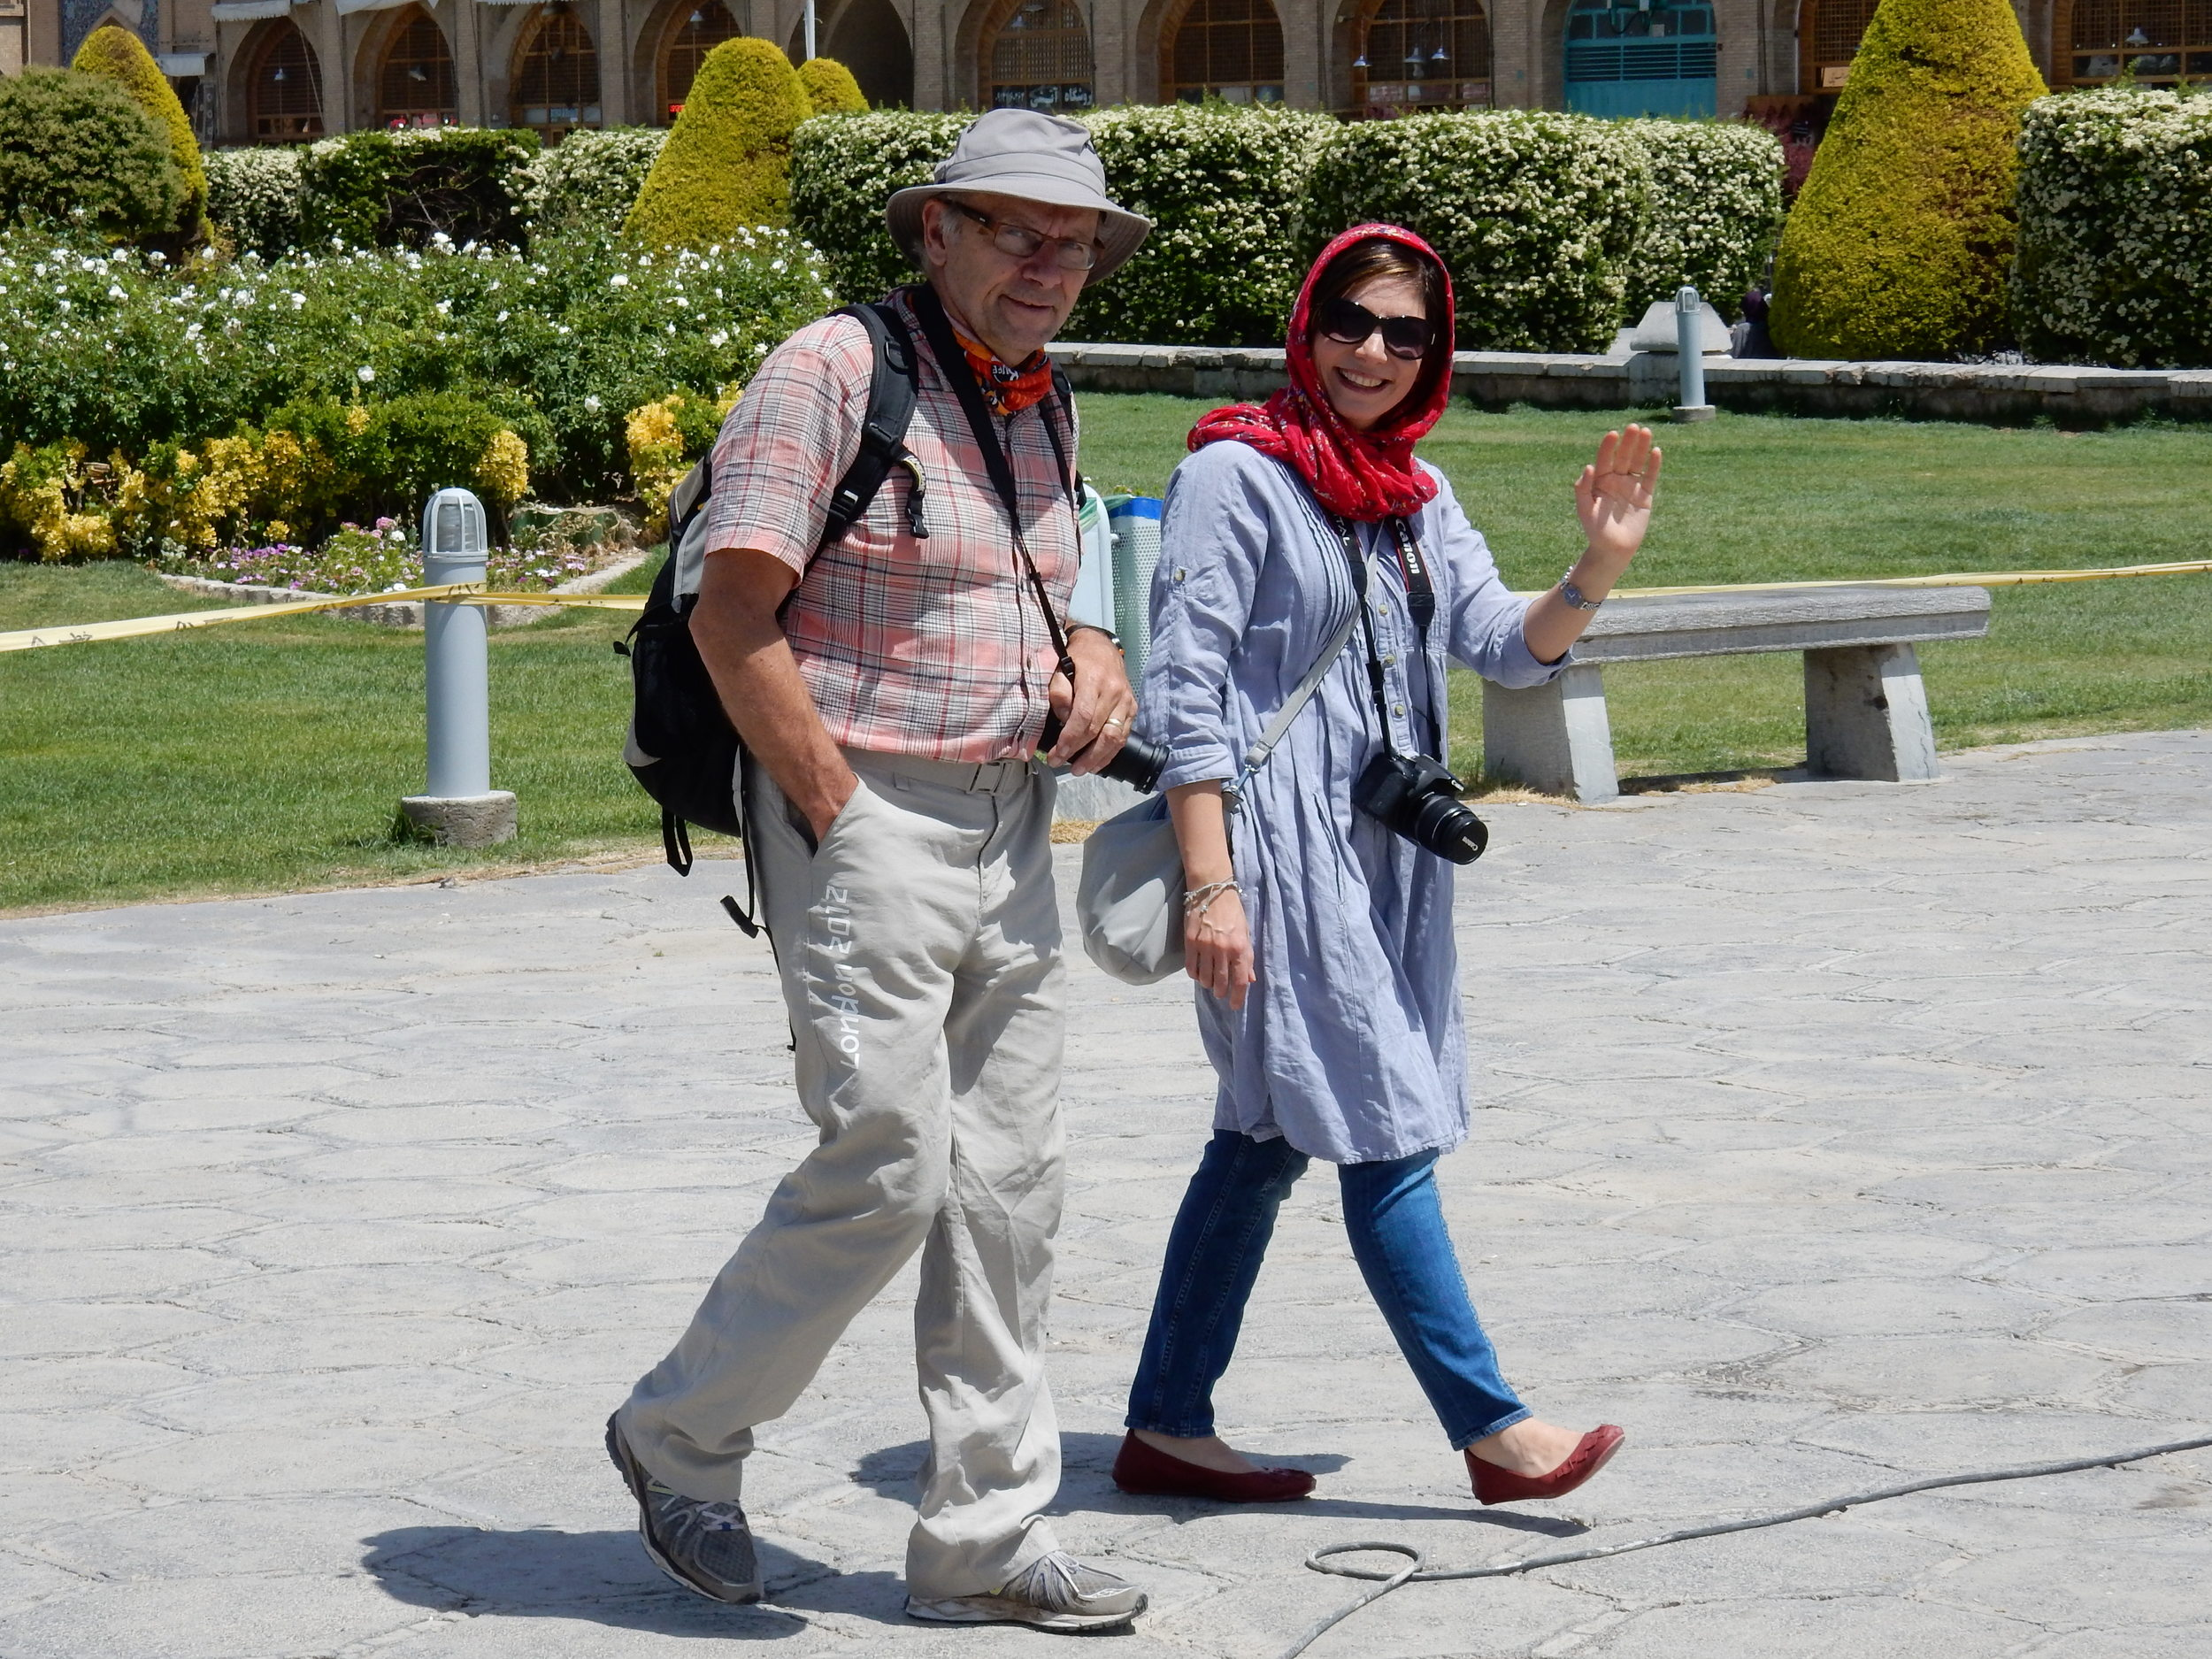 Ron and Shirin at Nahghsh-e Jahan square - Isfahan